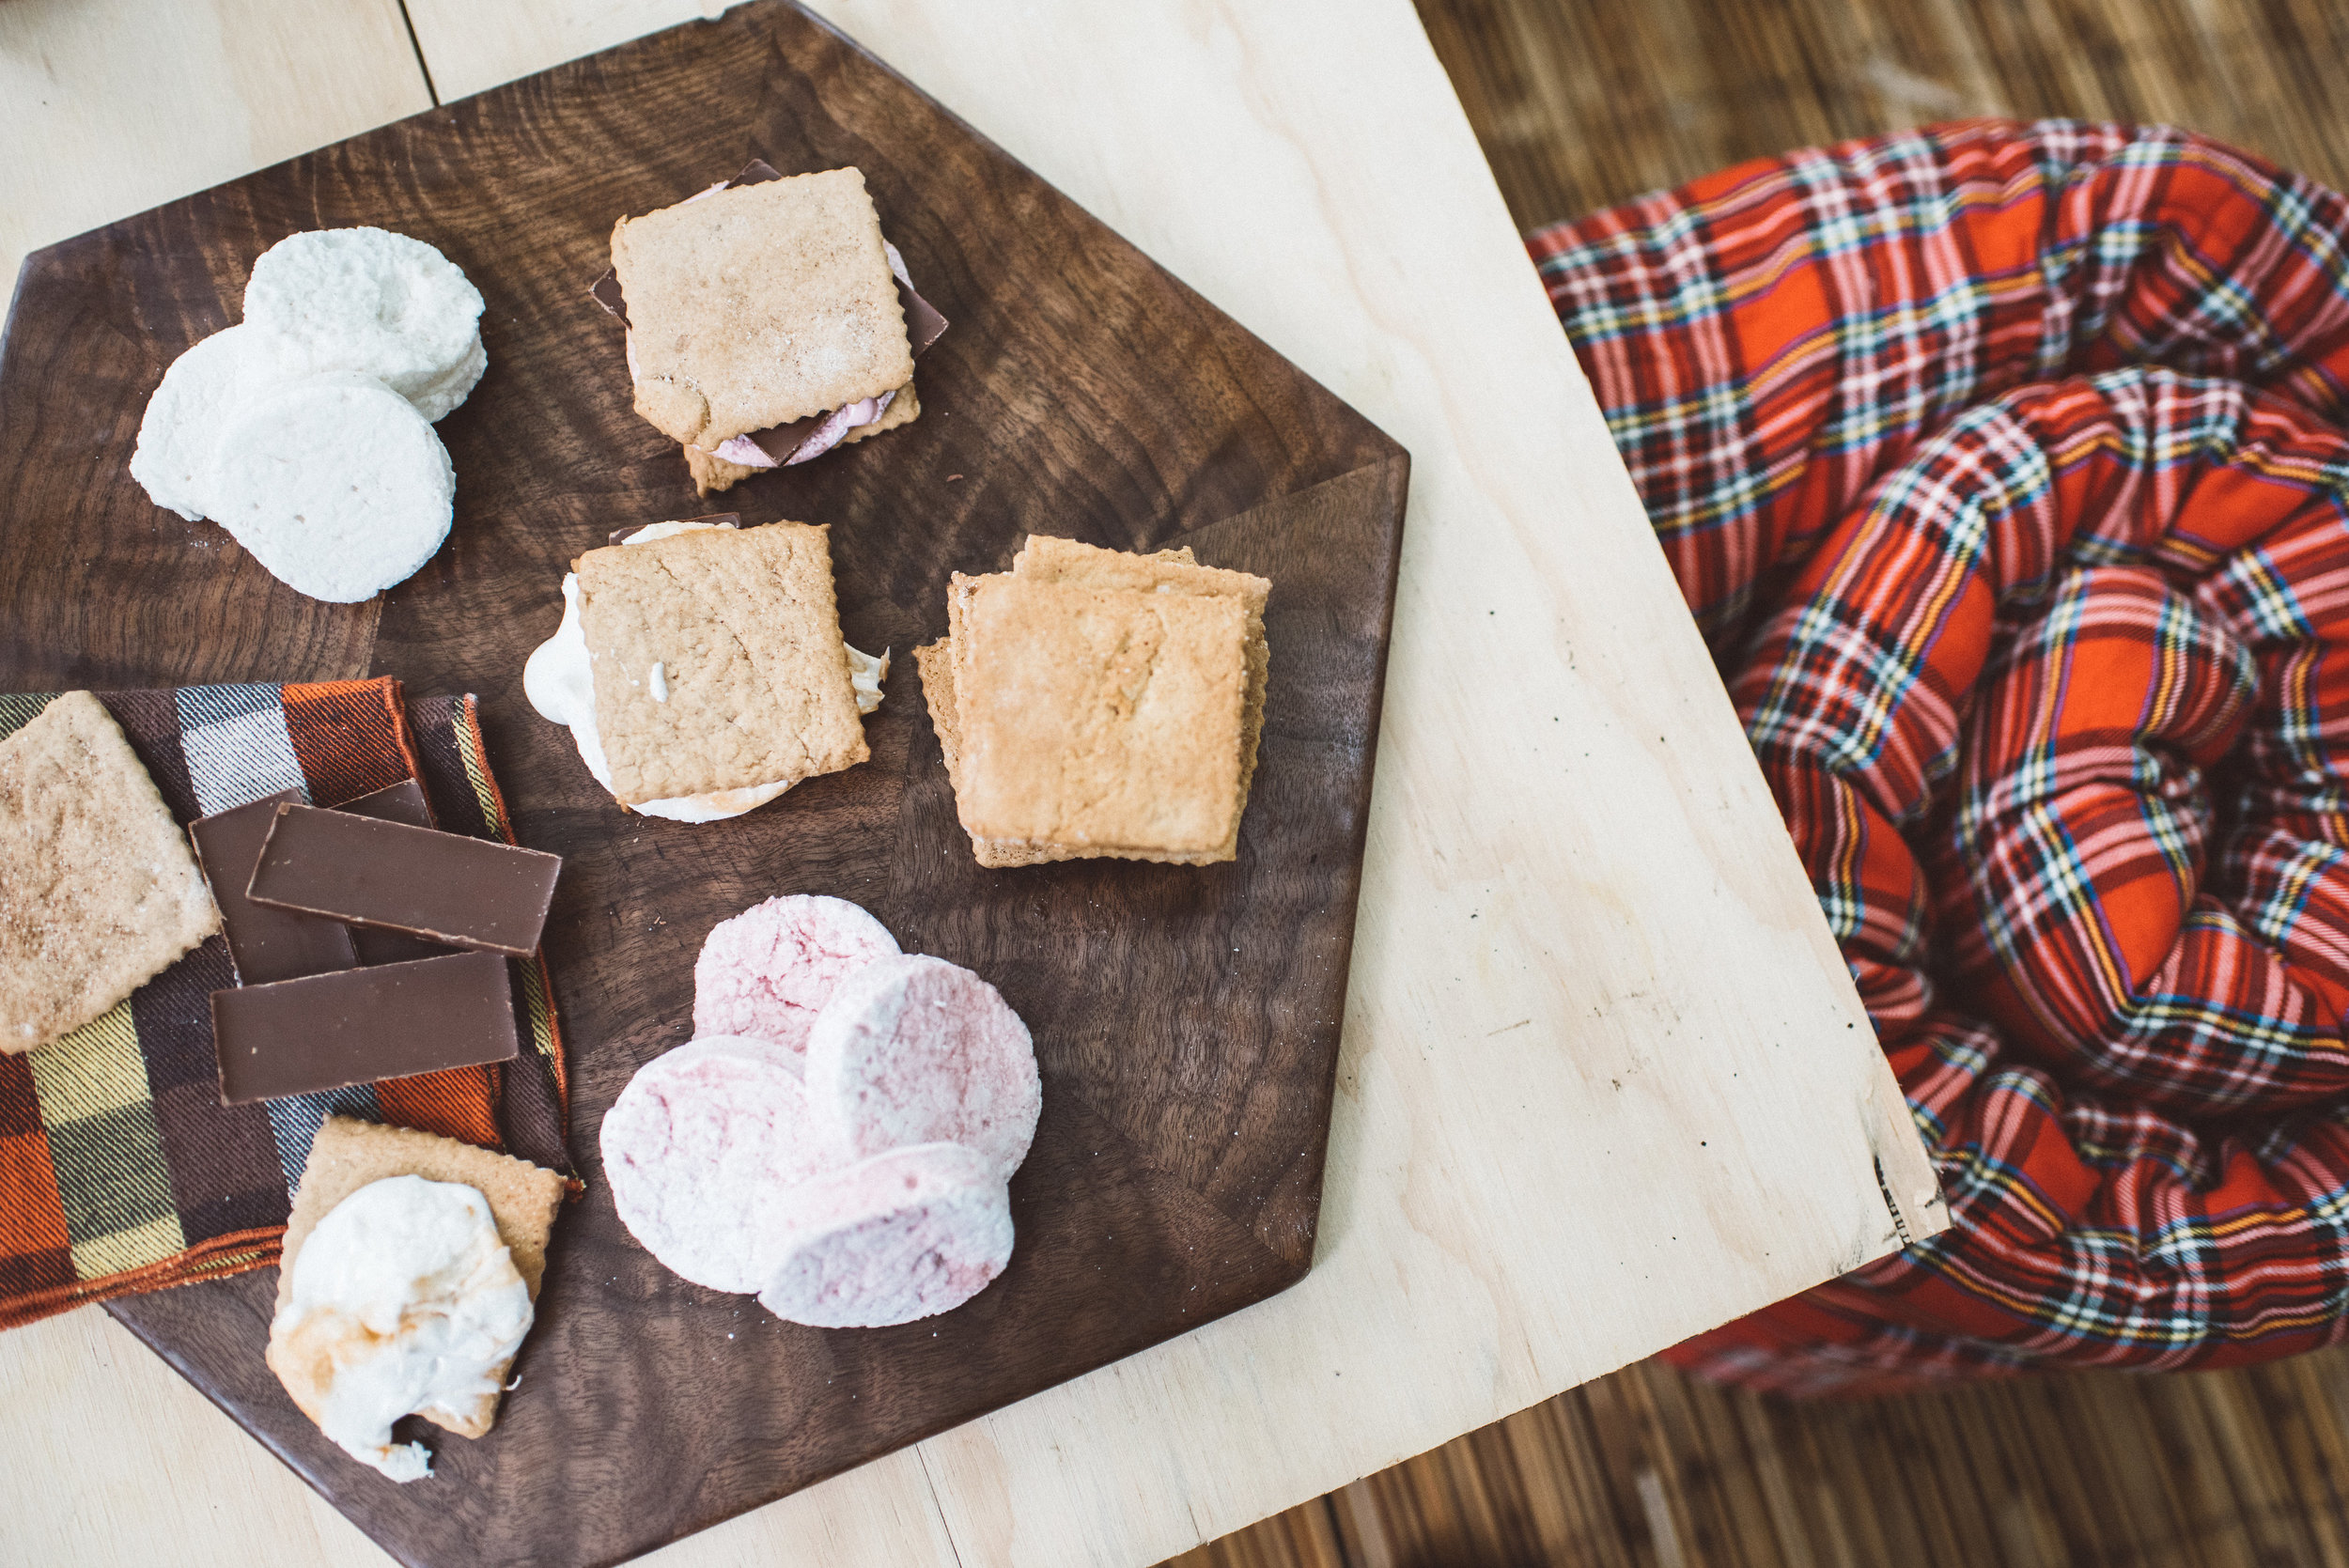 Shown: Marshmallows by Olivia Rose (coming soon to the Flea) and hex cutting board by Three Hex Studios. Sleeping bag from Great Lake Outfitters.